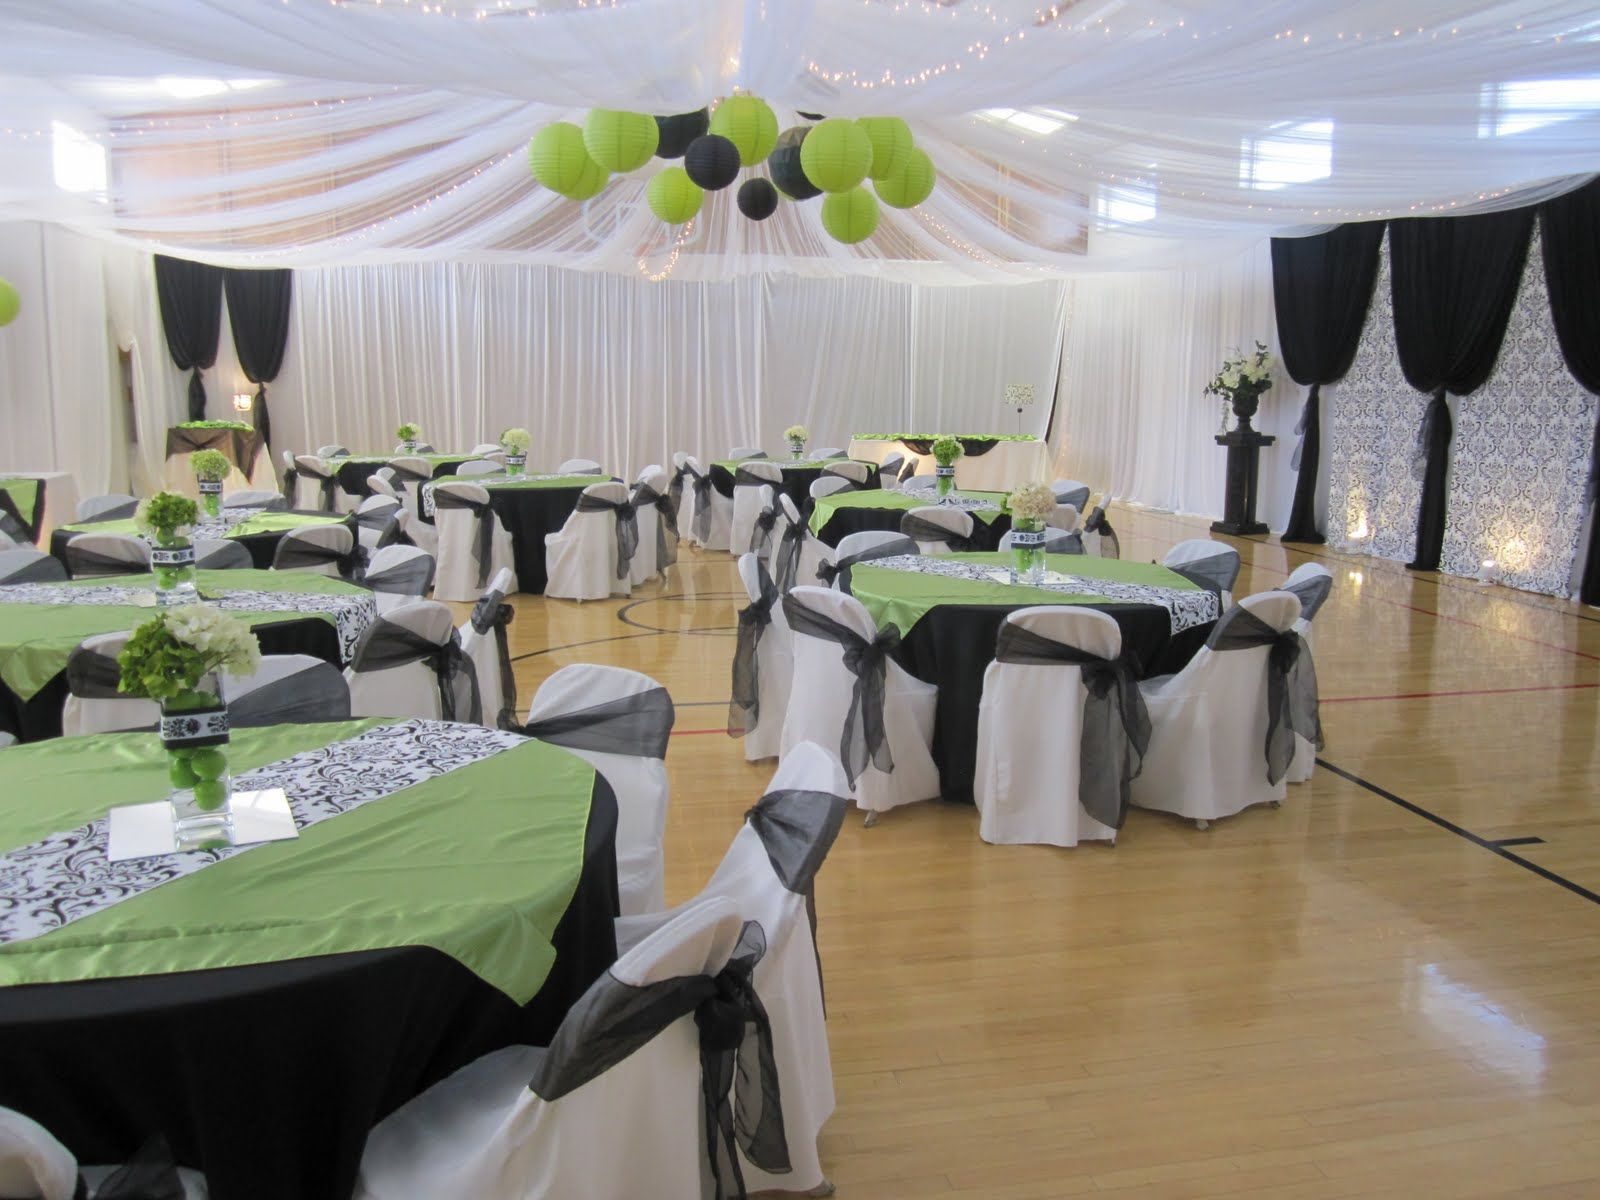 Wedding reception in a gym ideas wedding reception for Pictures of wedding venues decorated